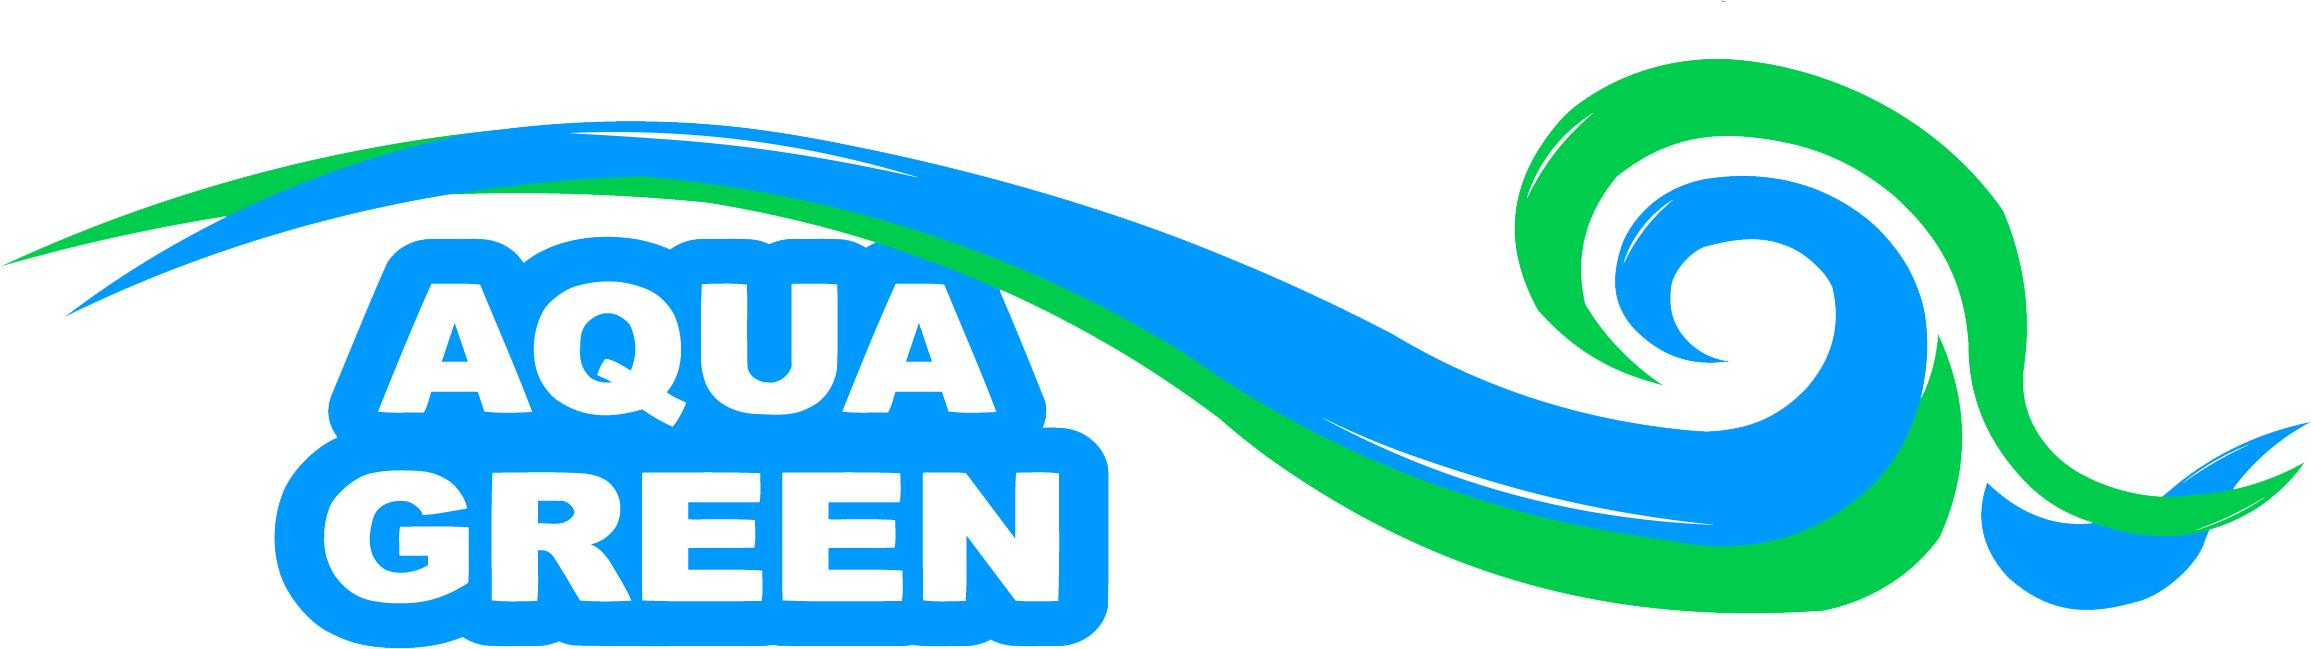 aquagreen logo_15_1_1